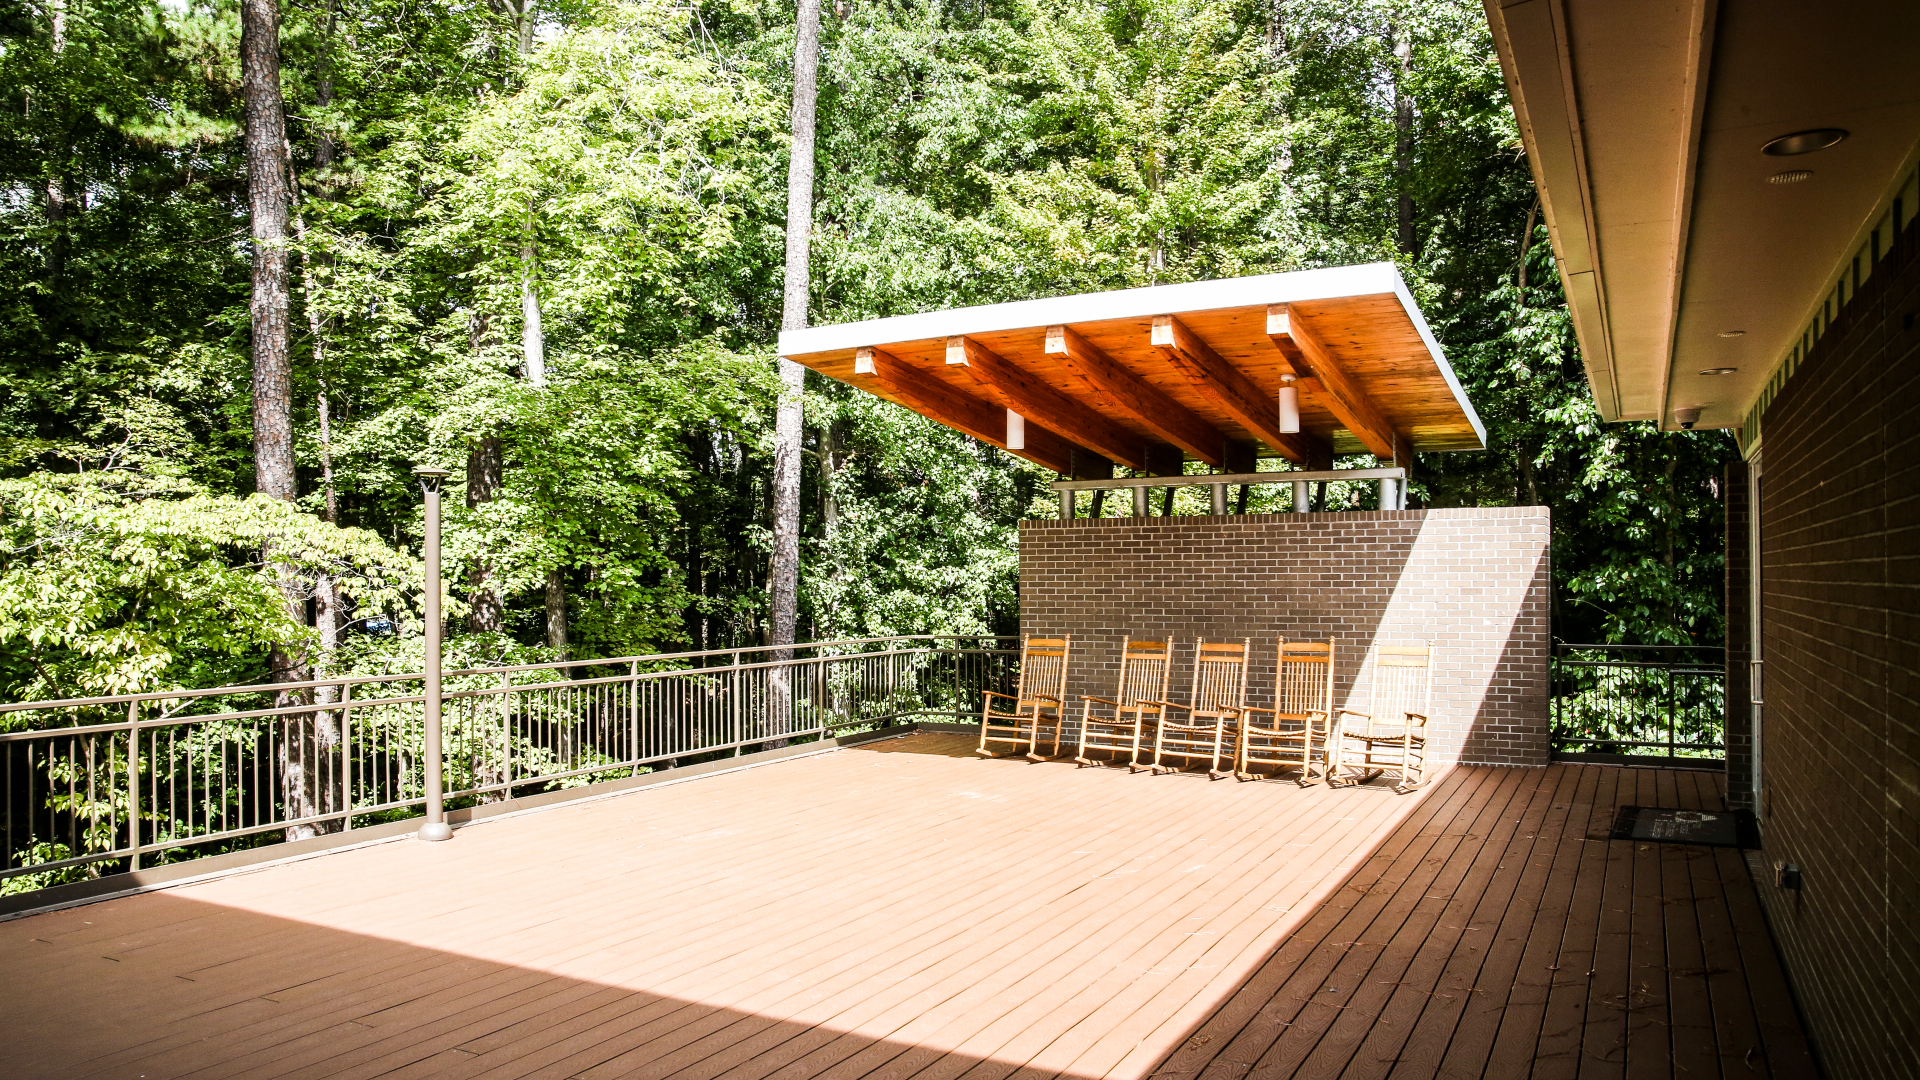 View of the deck at the Crowder Woodland Center